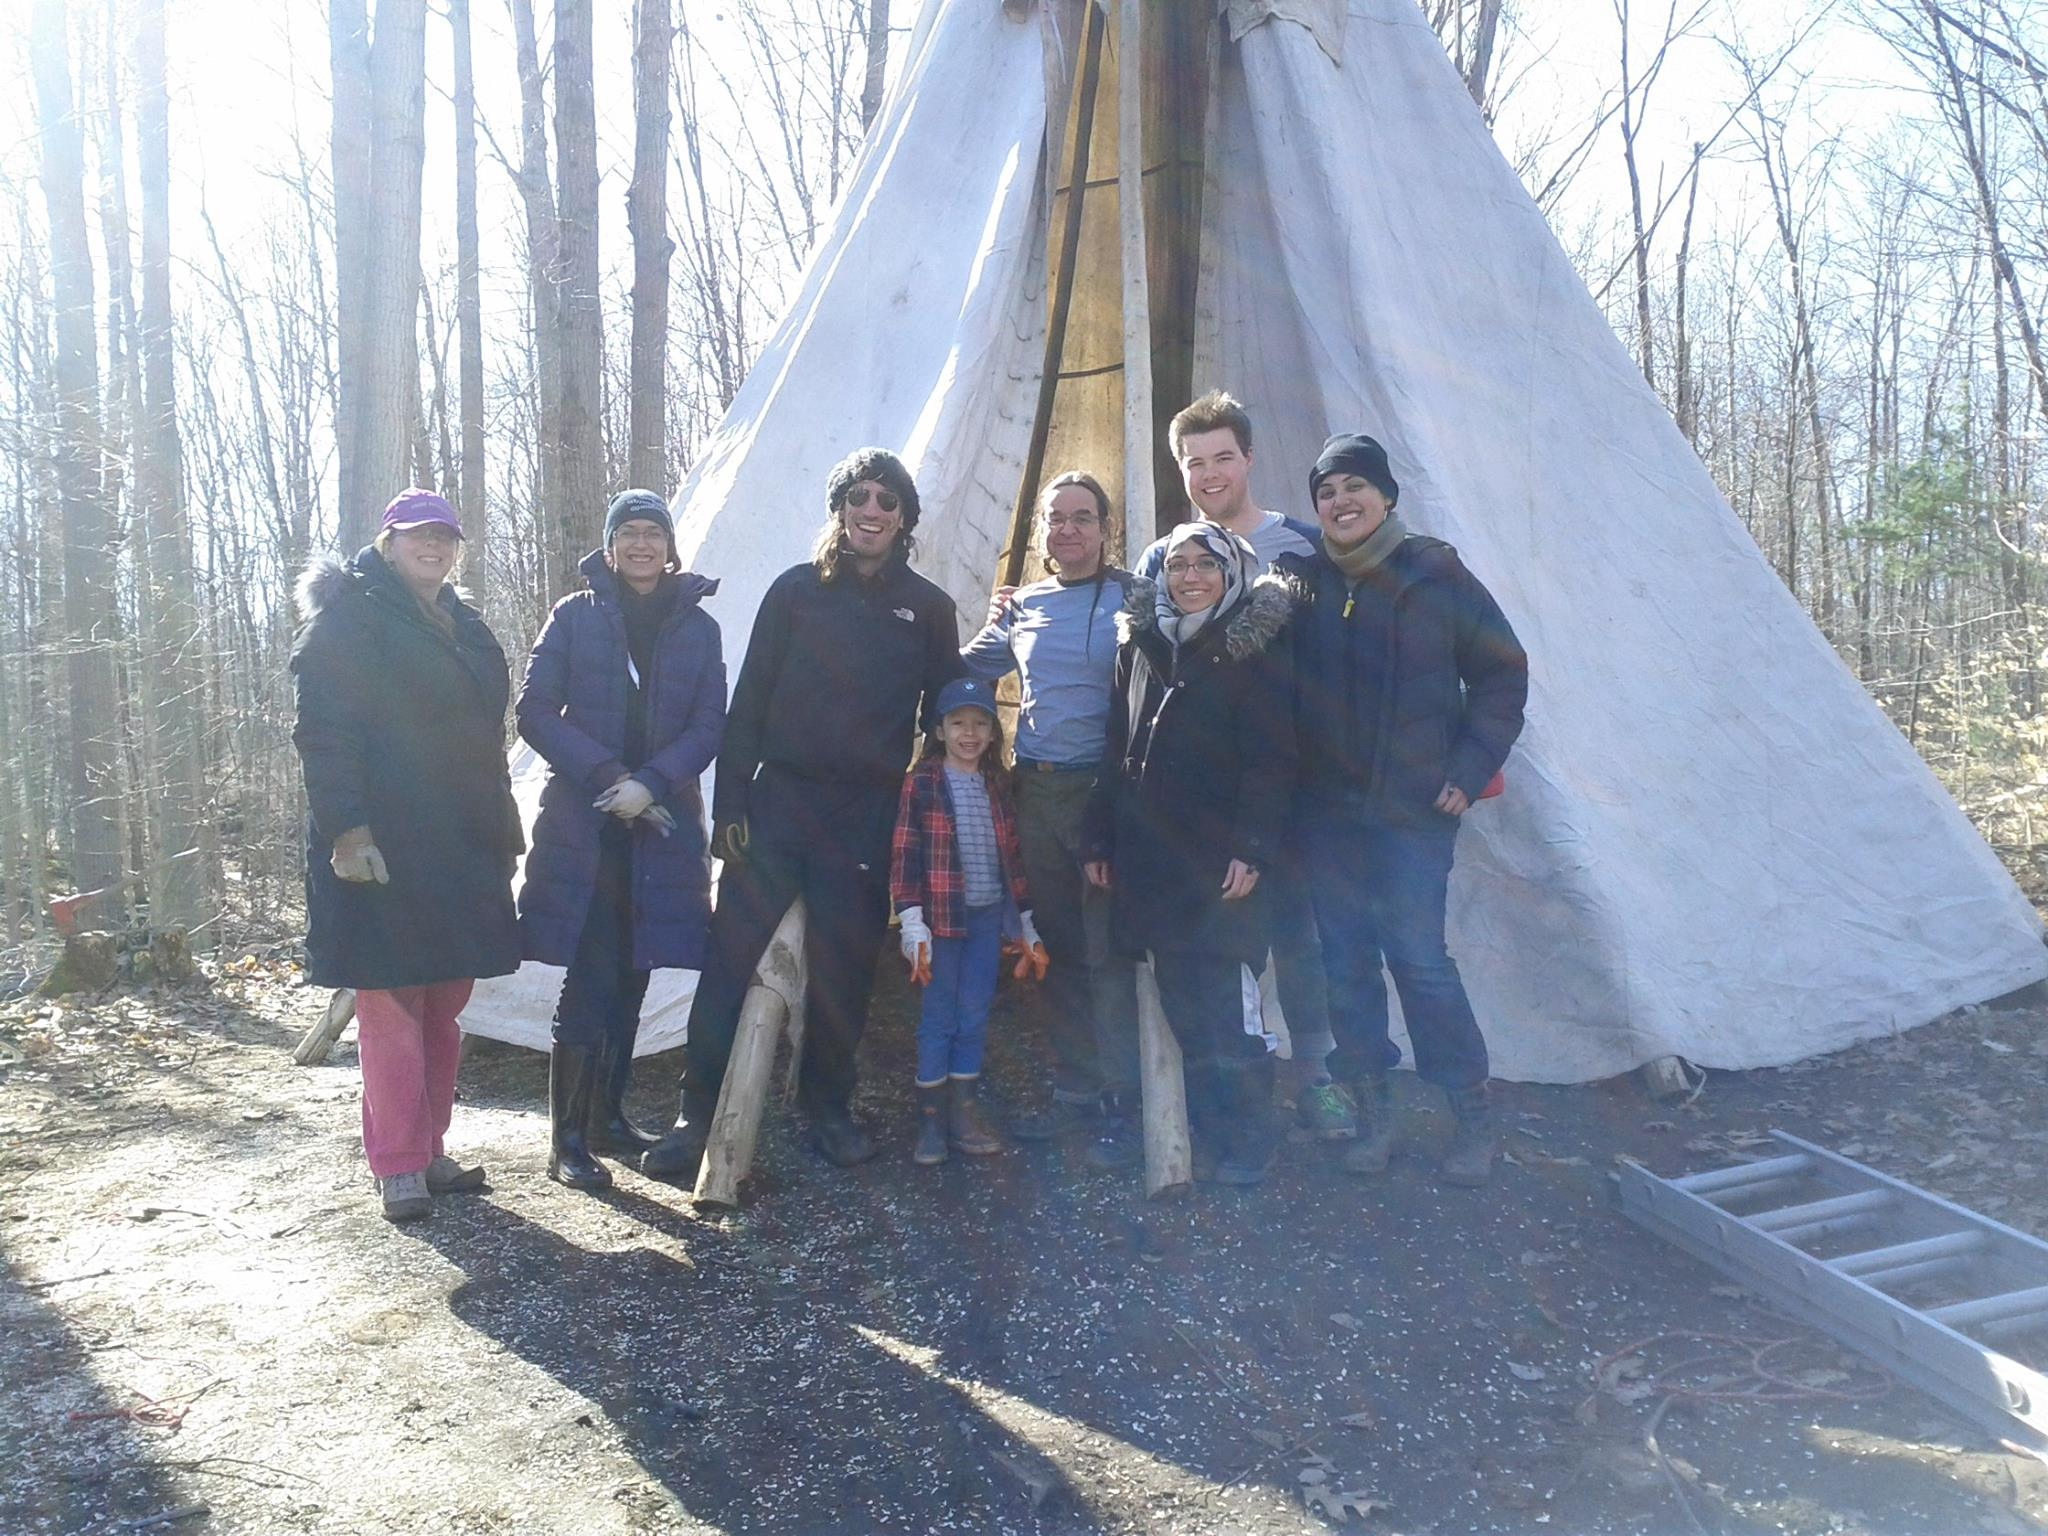 A group of students standing next to a teepee